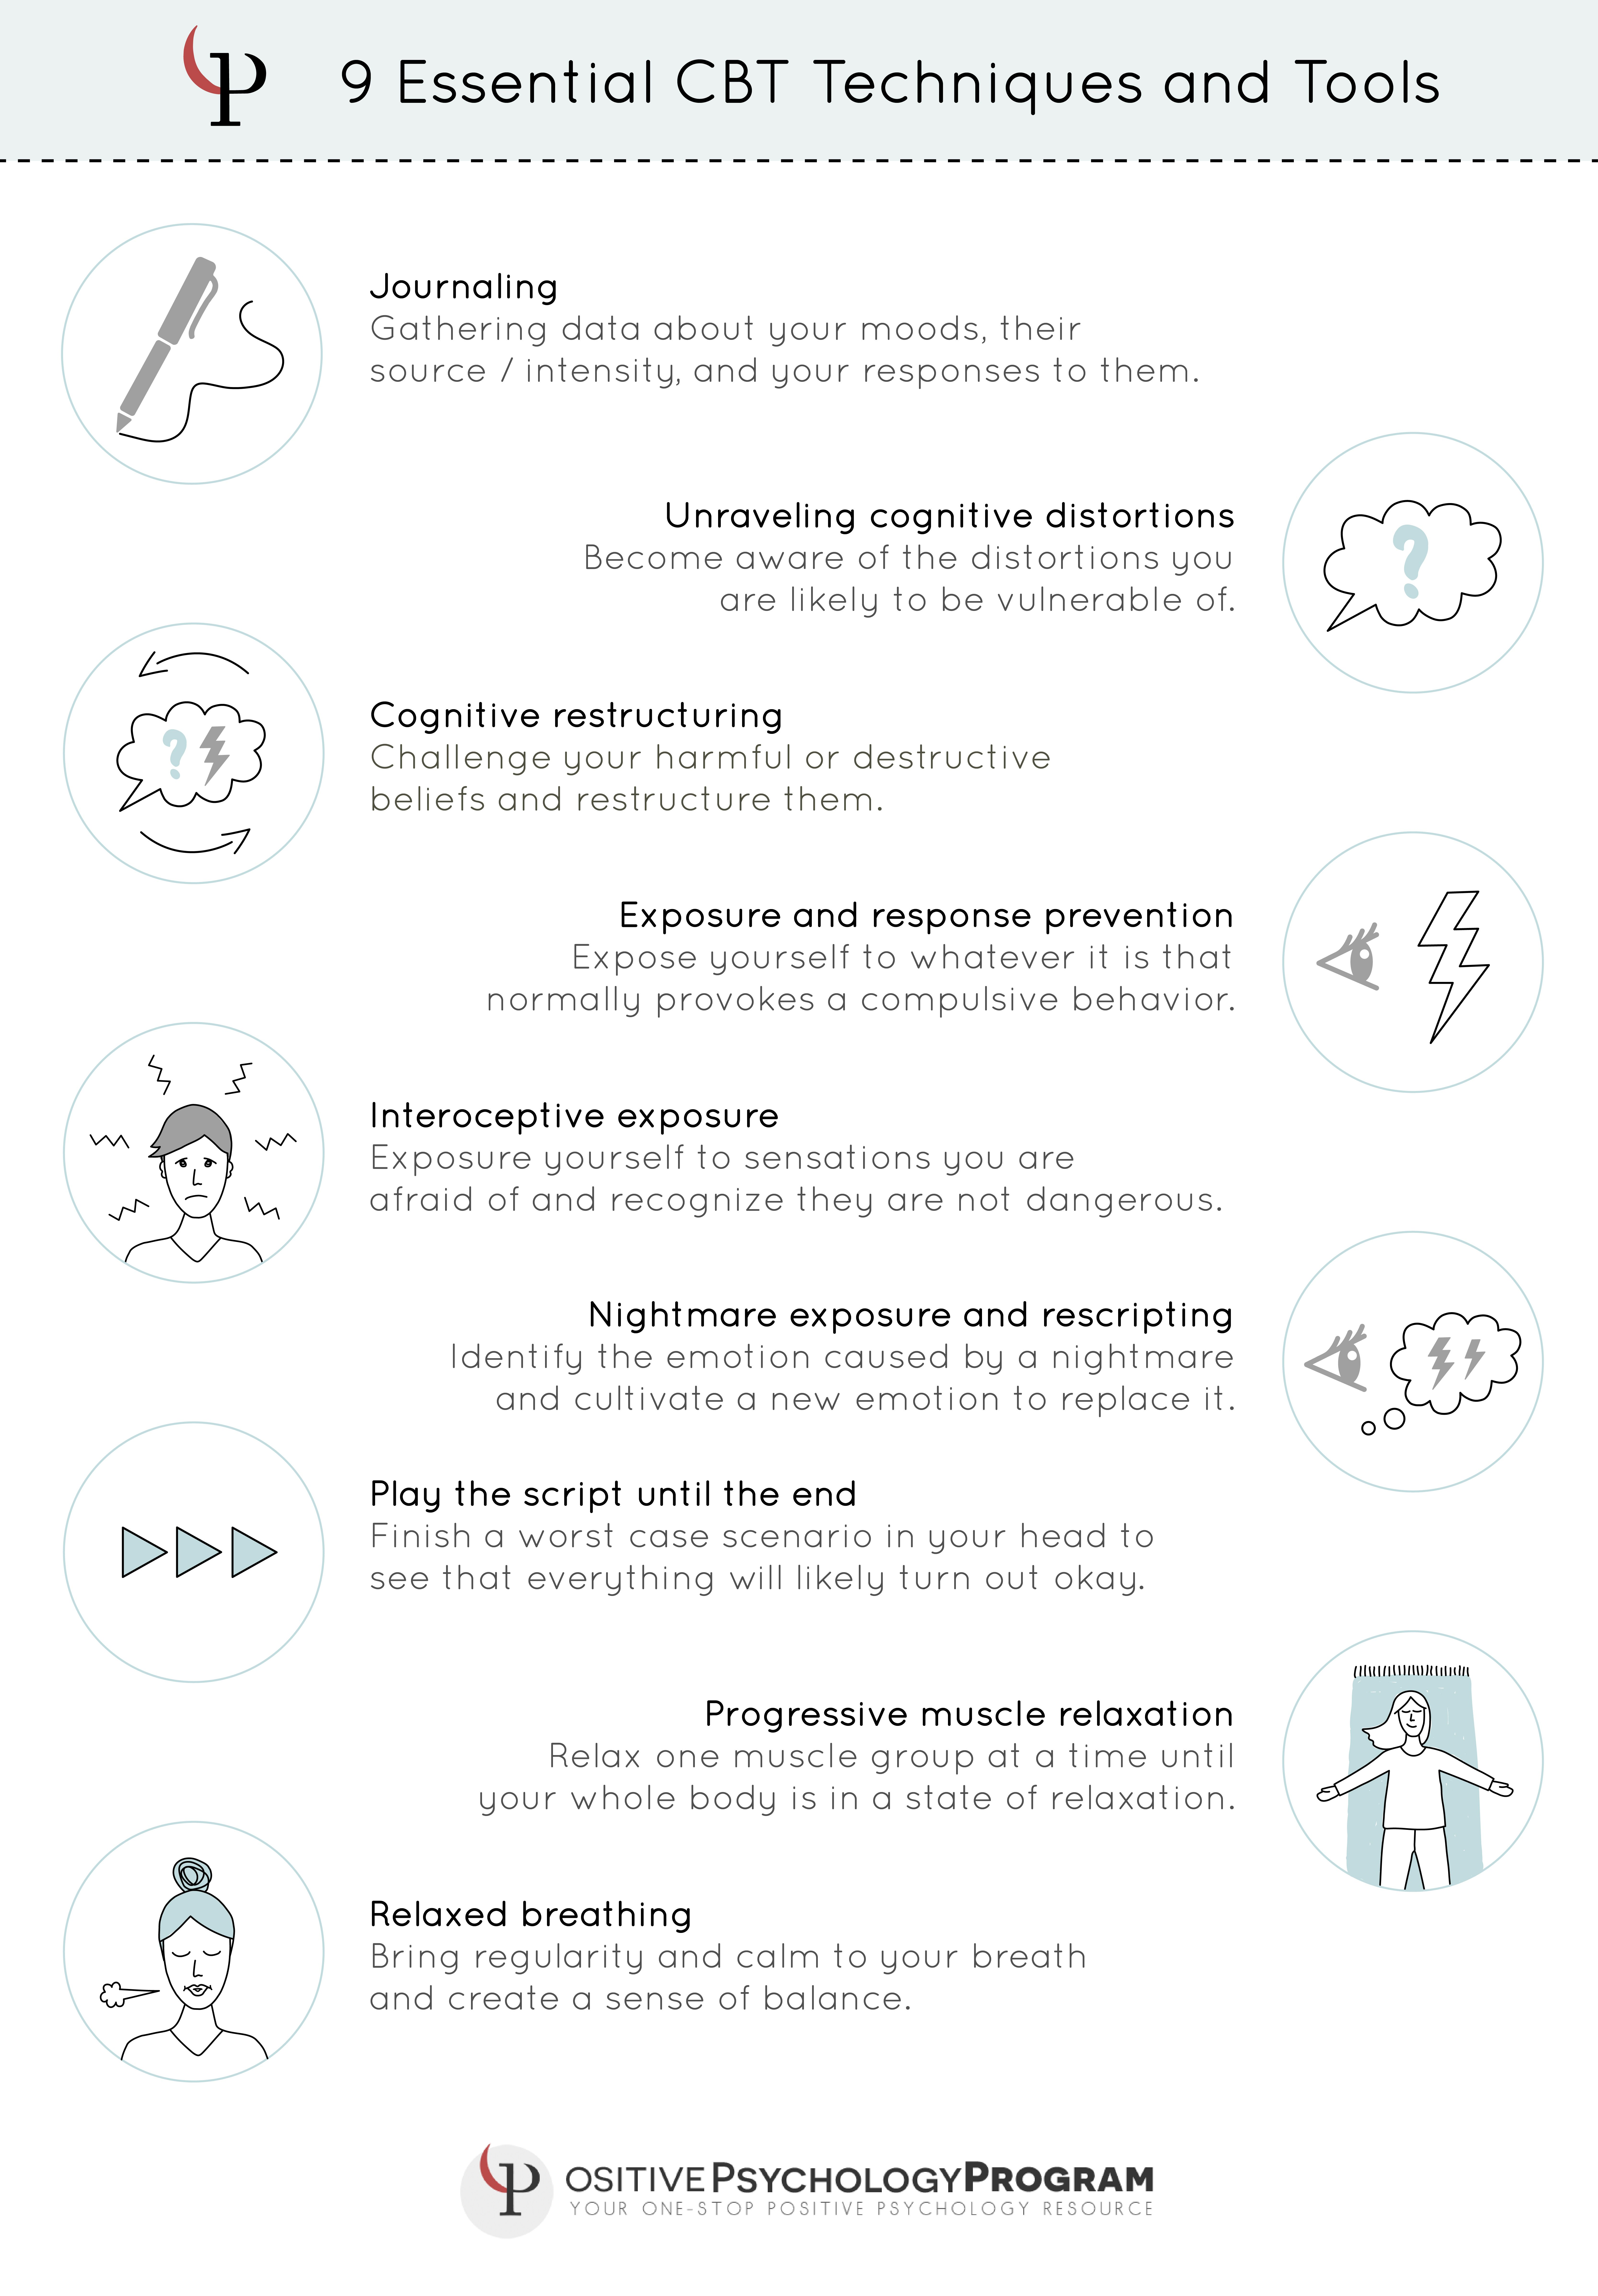 CBT Techniques and Tools infographic | CBT & DBT | Pinterest